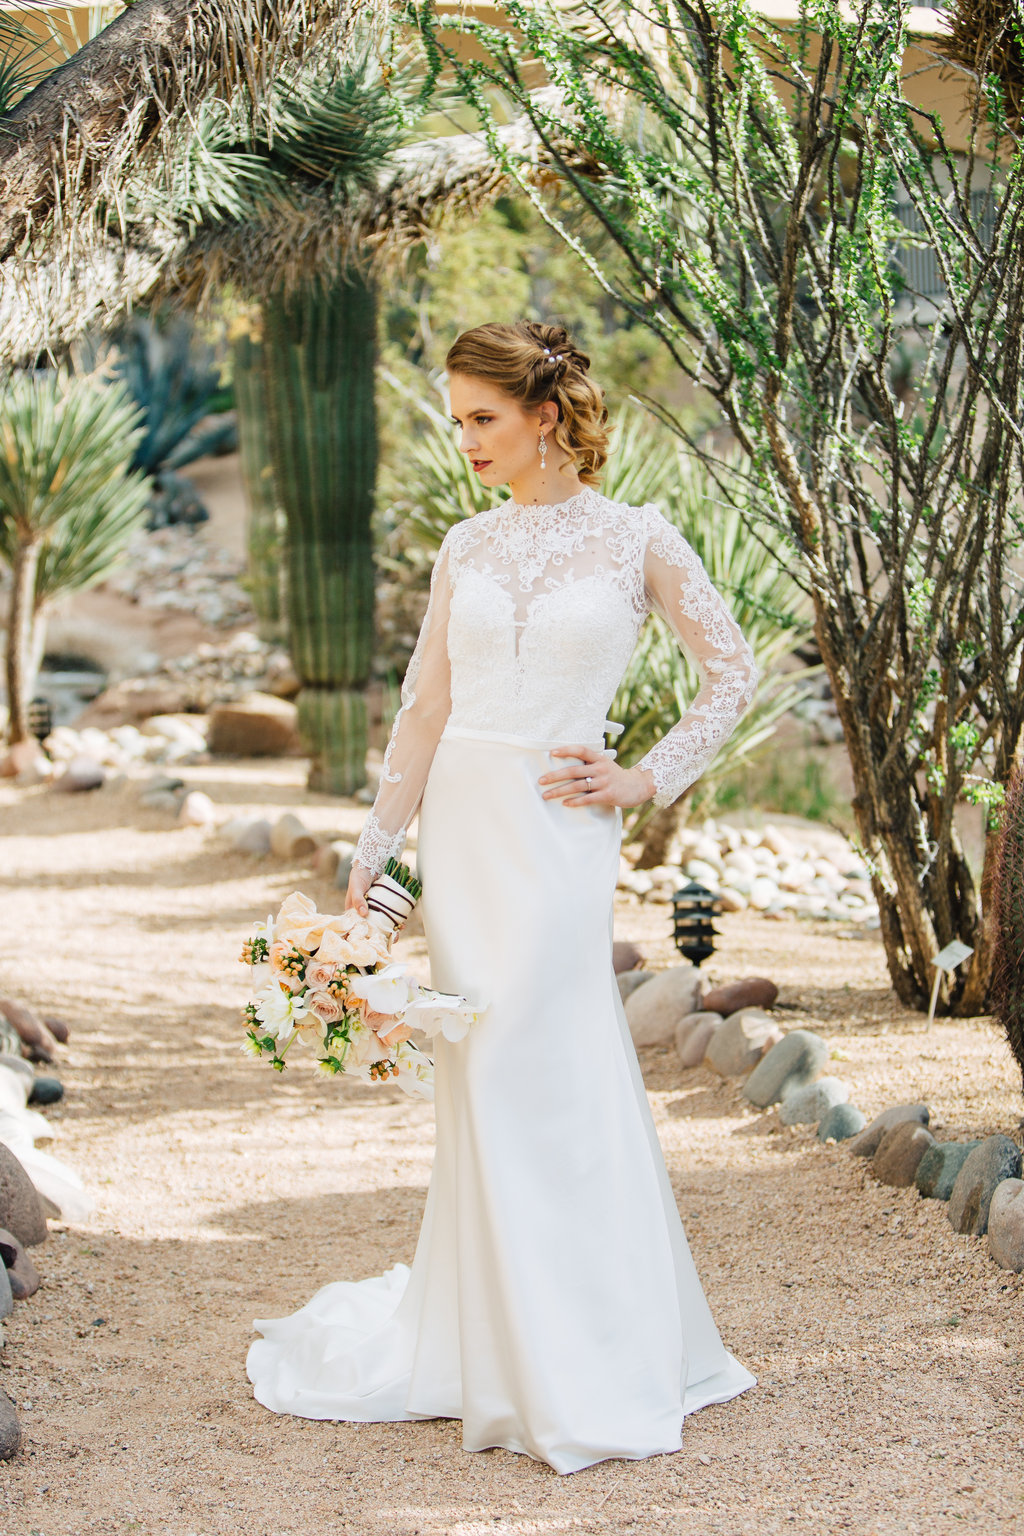 Bride, Phoenix Scottsdale Arizona Wedding Planner, Bridal gown, lace bridal gown, sleeved bridal gown, southwest,  Orchids, blush, peach, southwest, elegant, flowers, roses, rustic, western, bridal bouquet